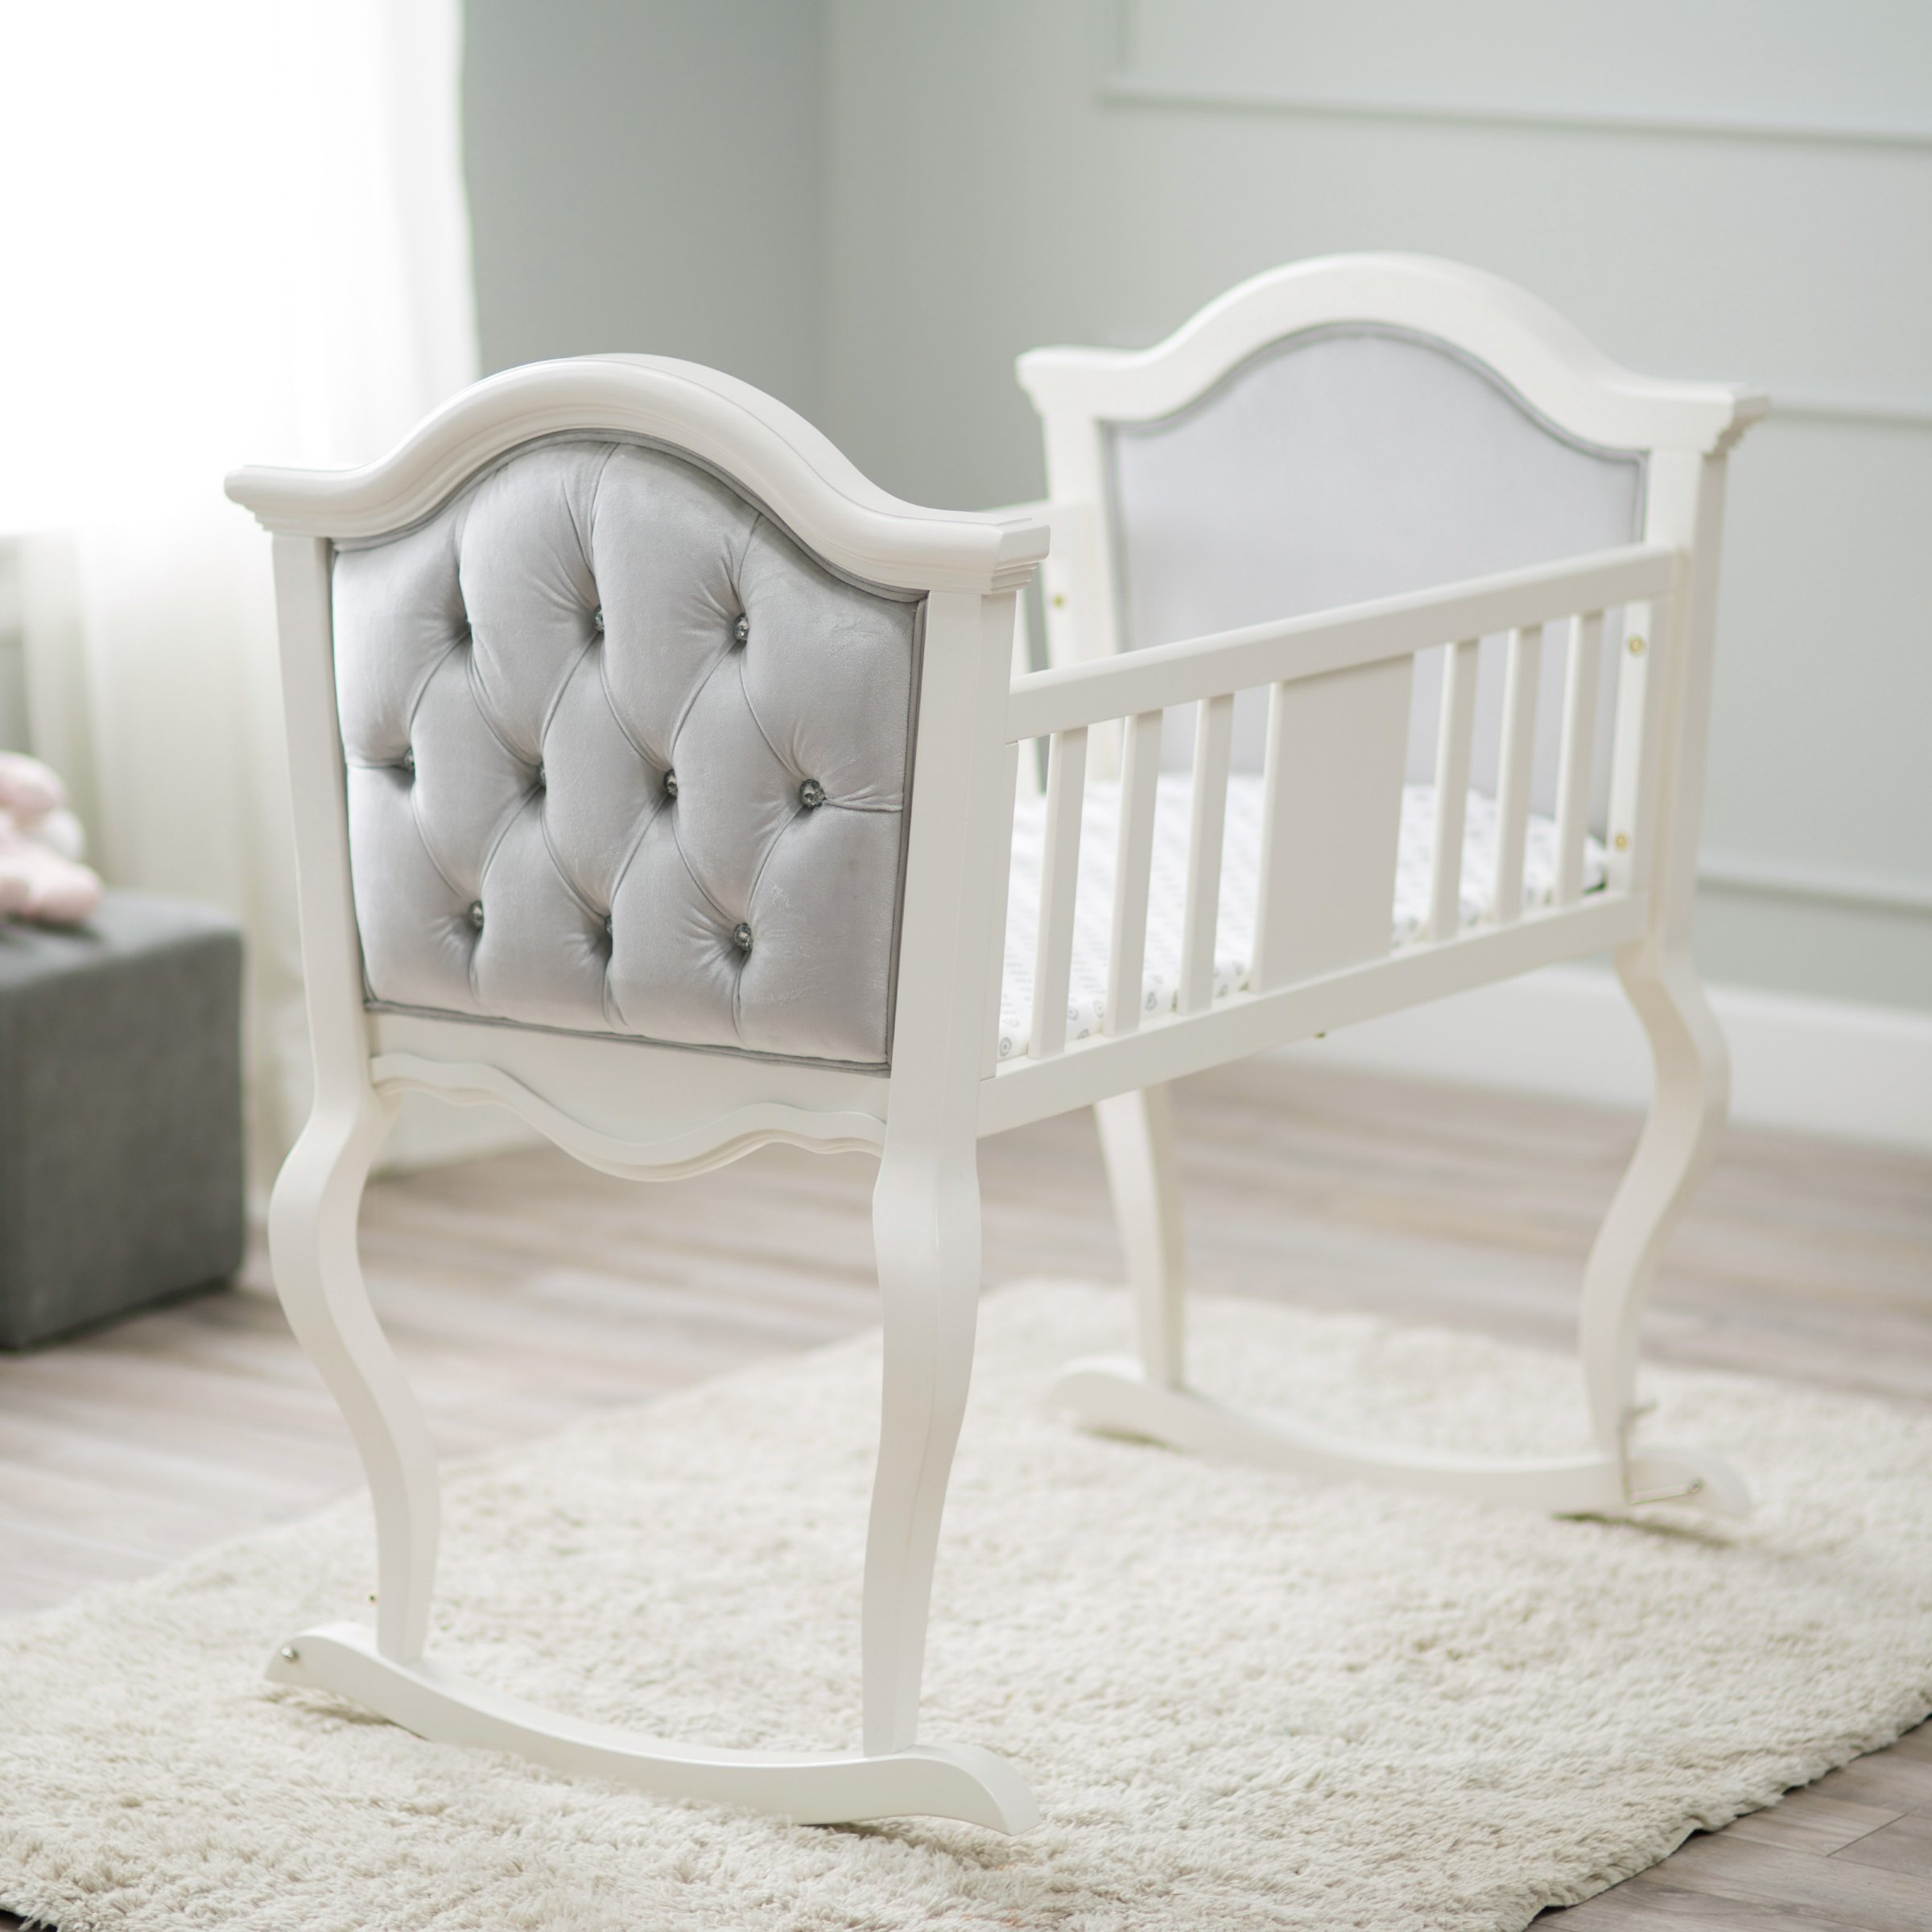 7 Stylish Baby Bassinets You39ll Actually Want In Your Bedroom